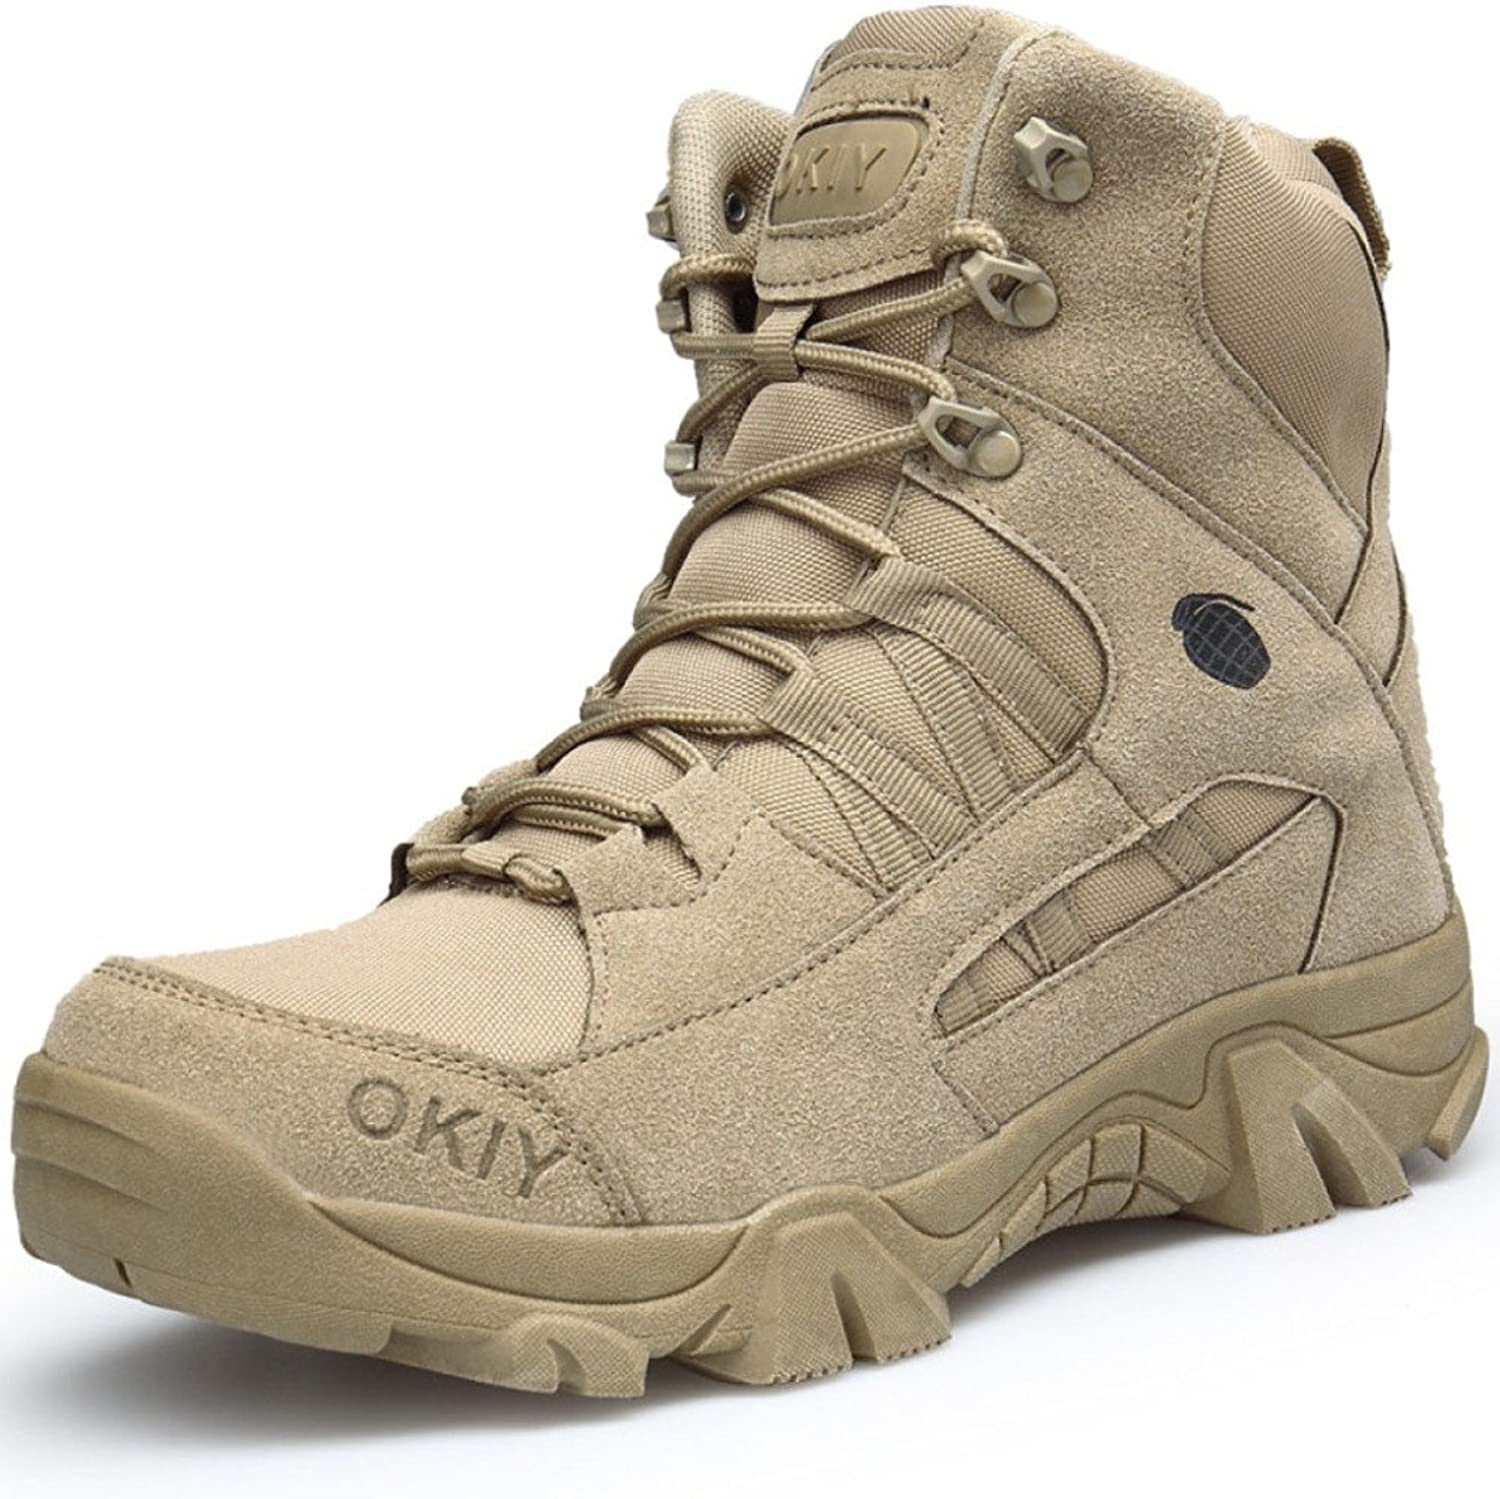 Boots,Mens,Military Army,Tactical Outdoor,Desert,Men,Breathable,Camping Hiking Combat,Lace Up High Top,Leather shoes